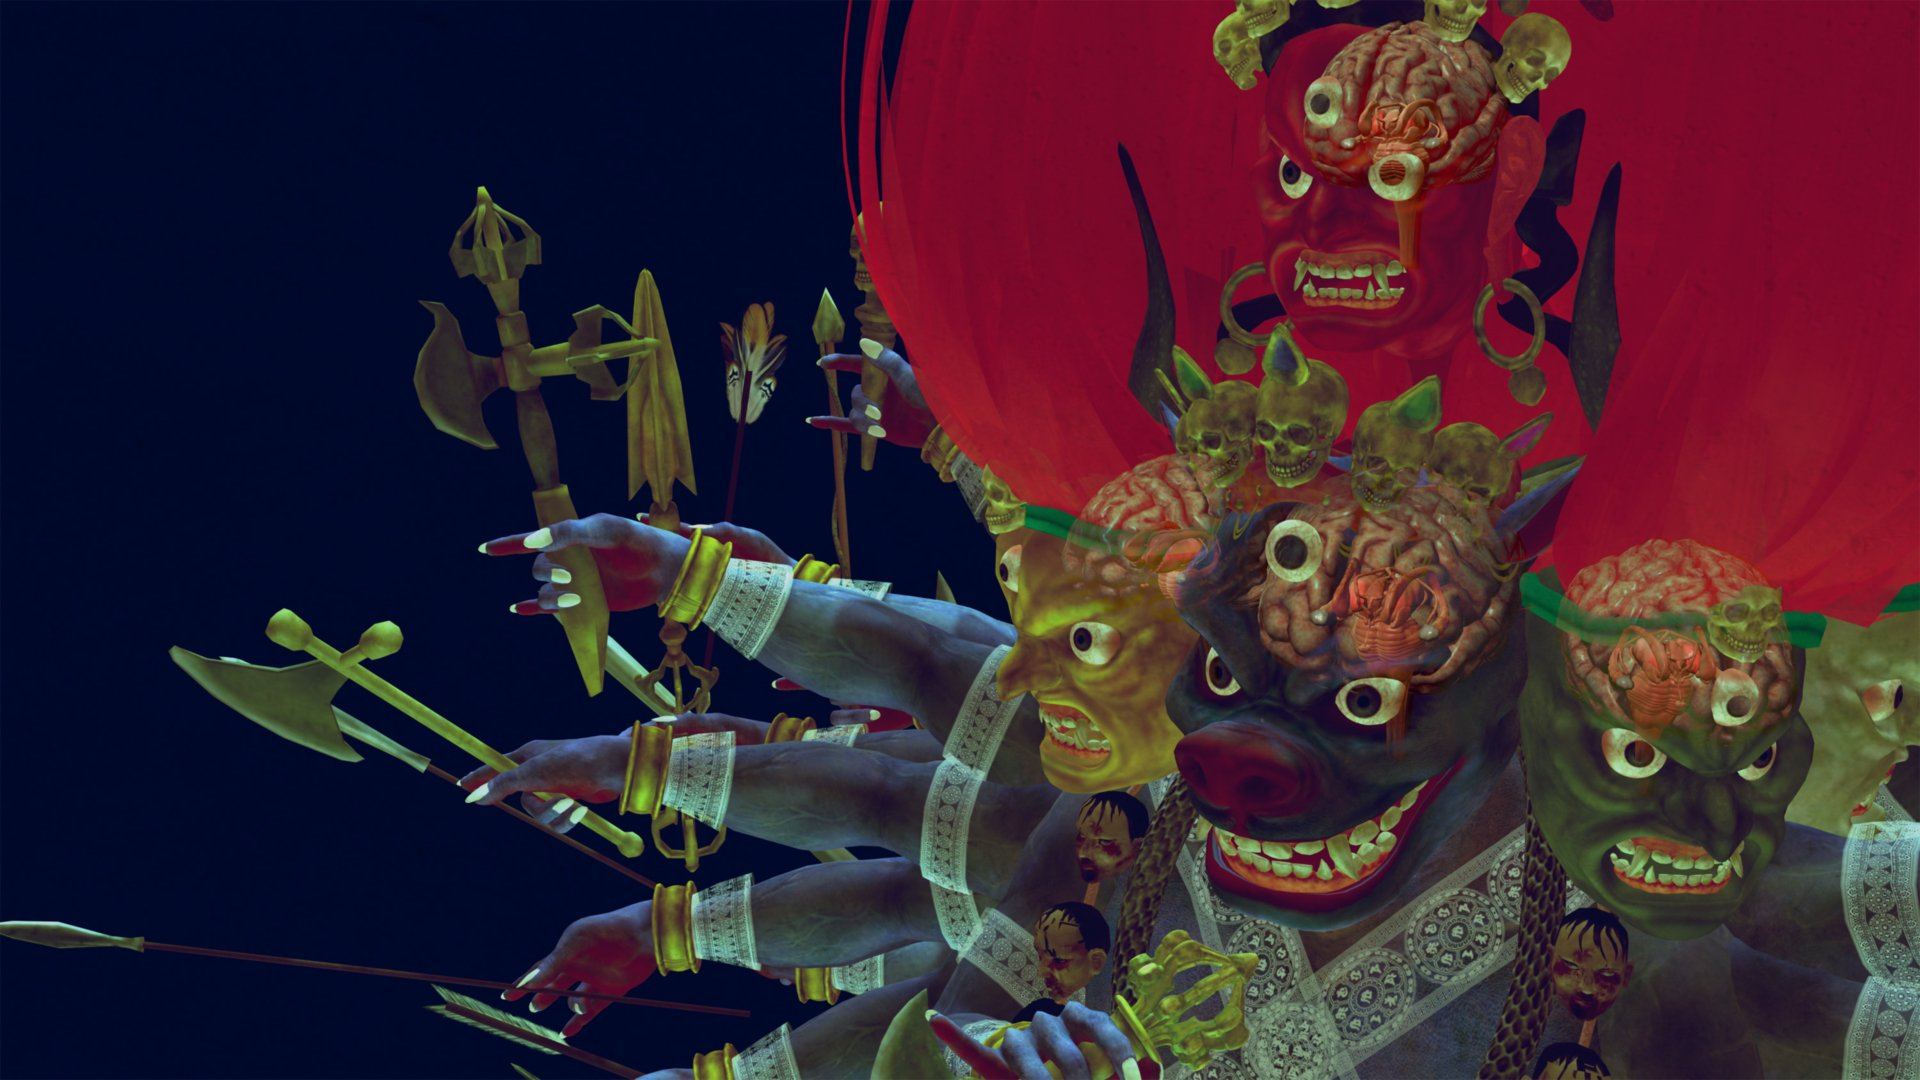 Lu Yang, Wrathful King Kong Core, 2011, project poster for video, 14'47''